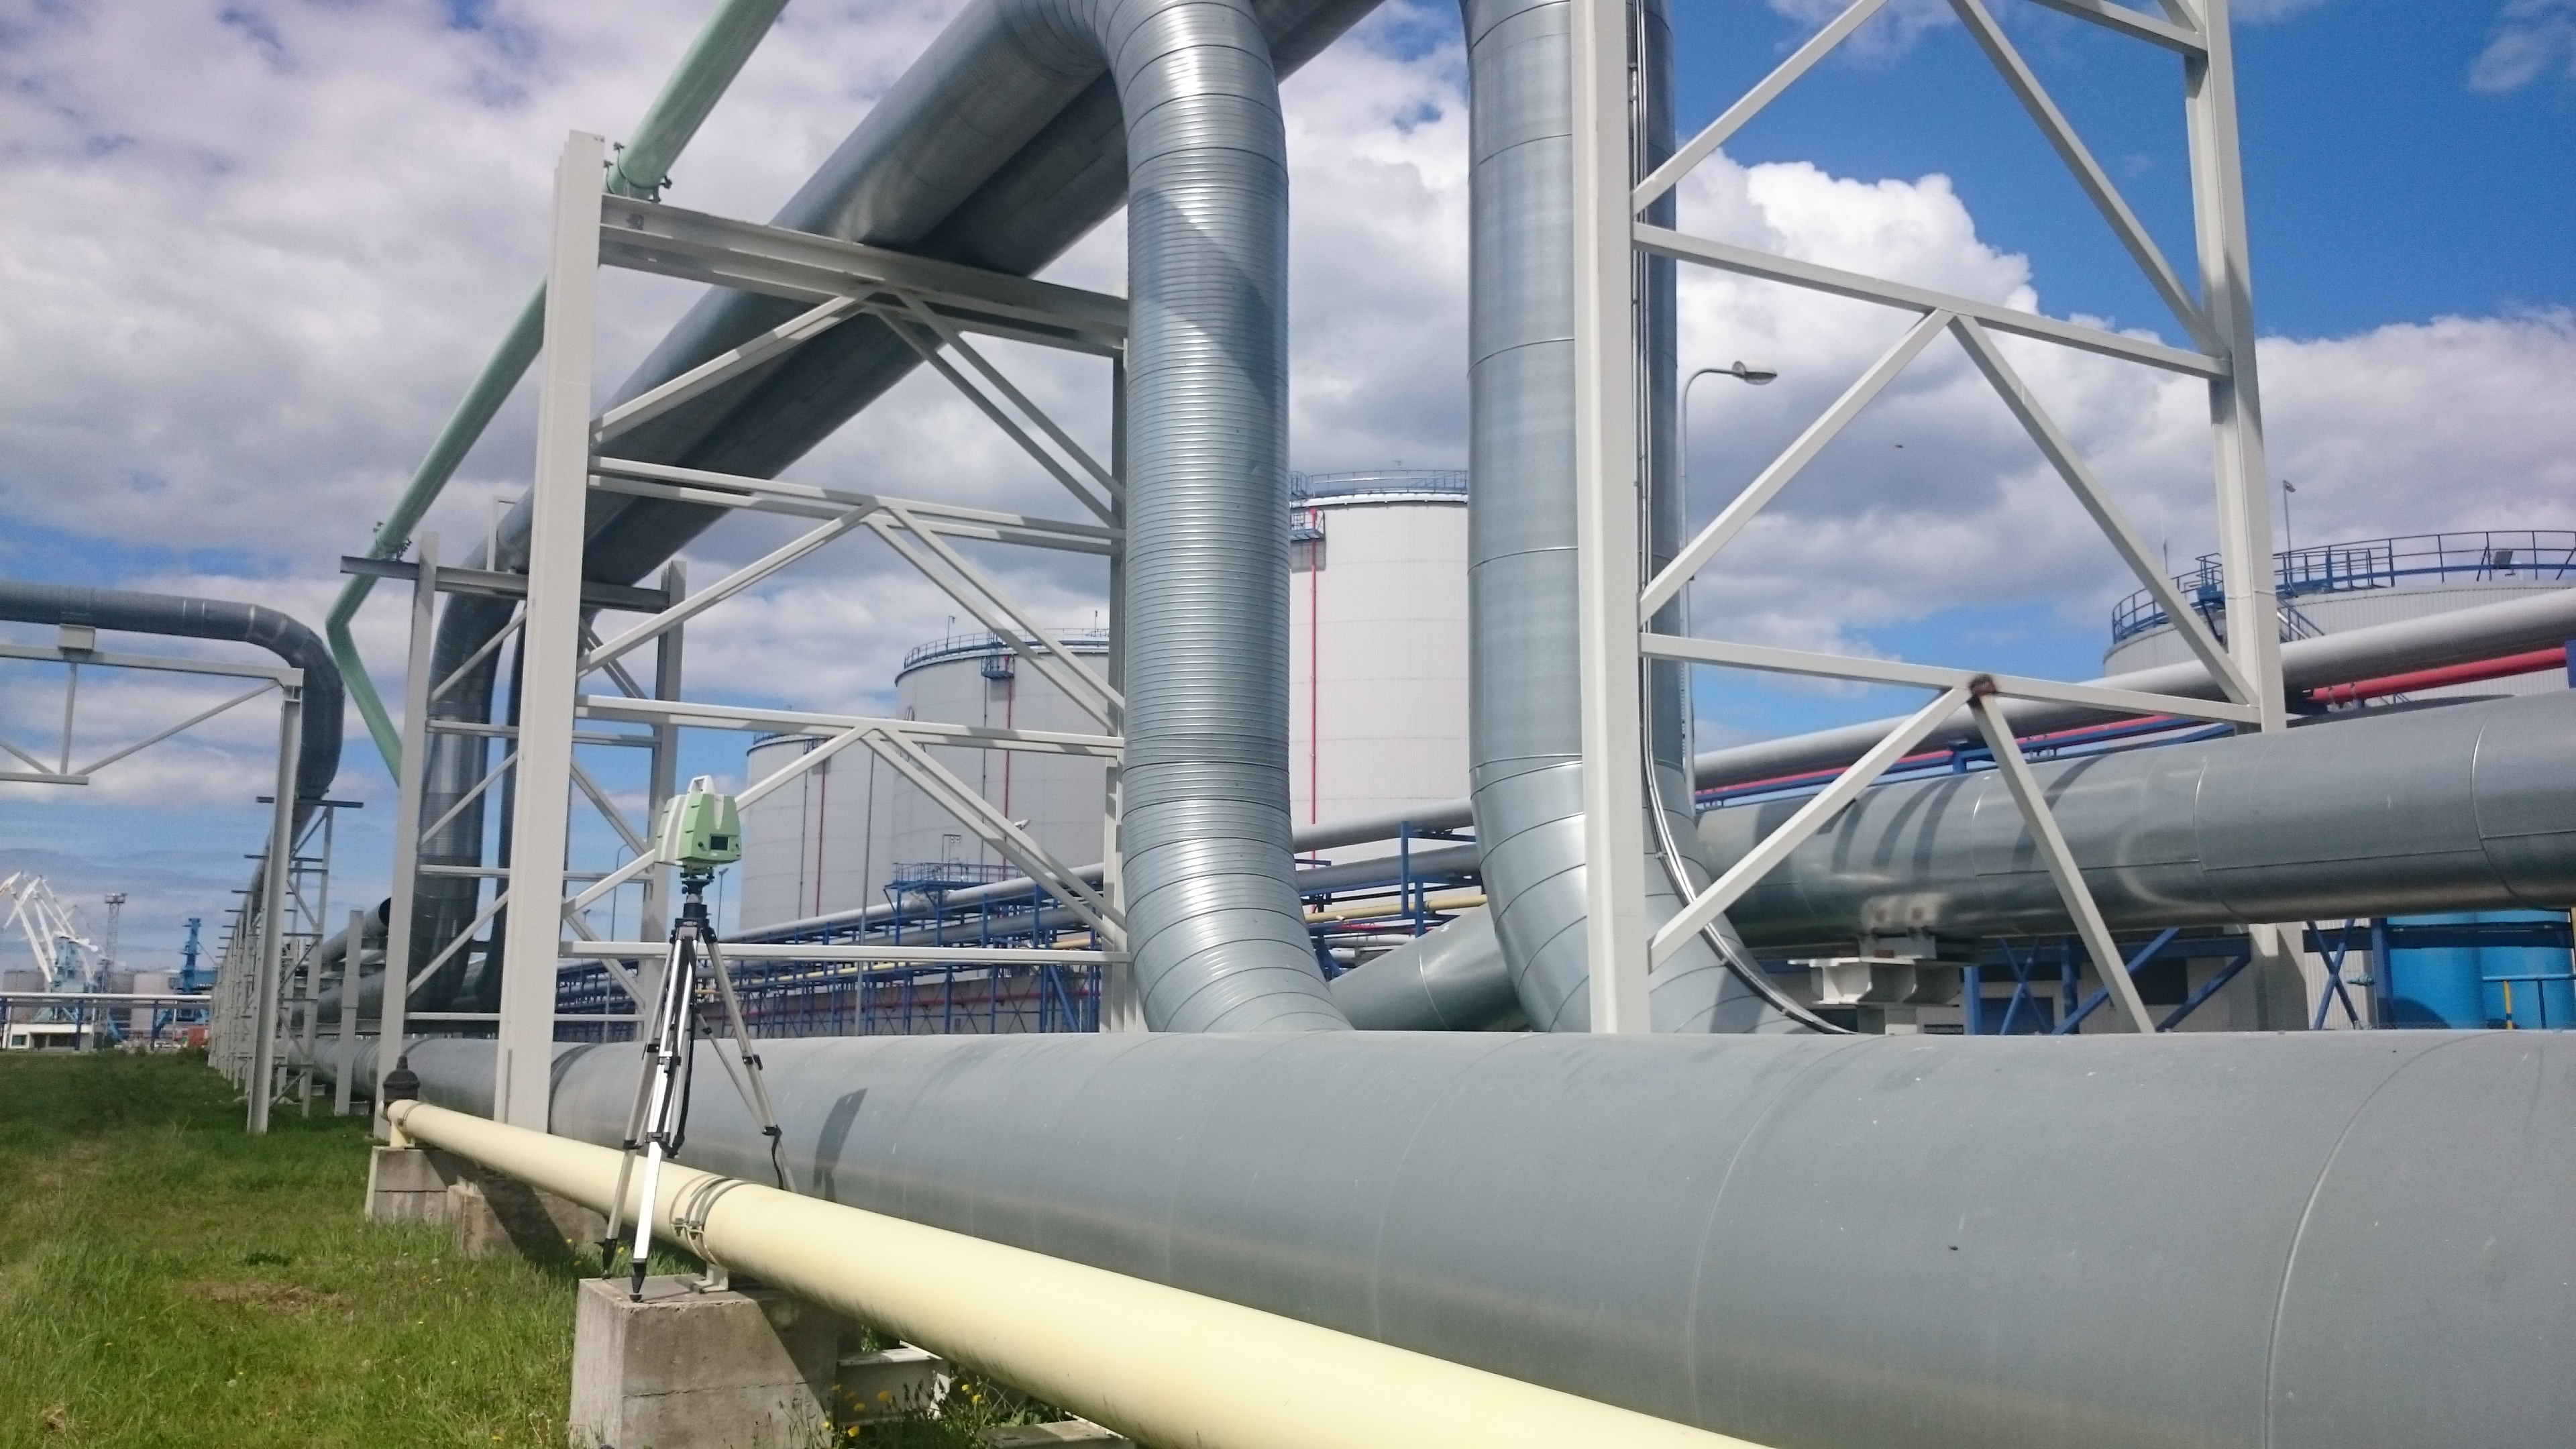 Laser scanning and 3D modelling of the pipes in Port of Muuga, Estonia